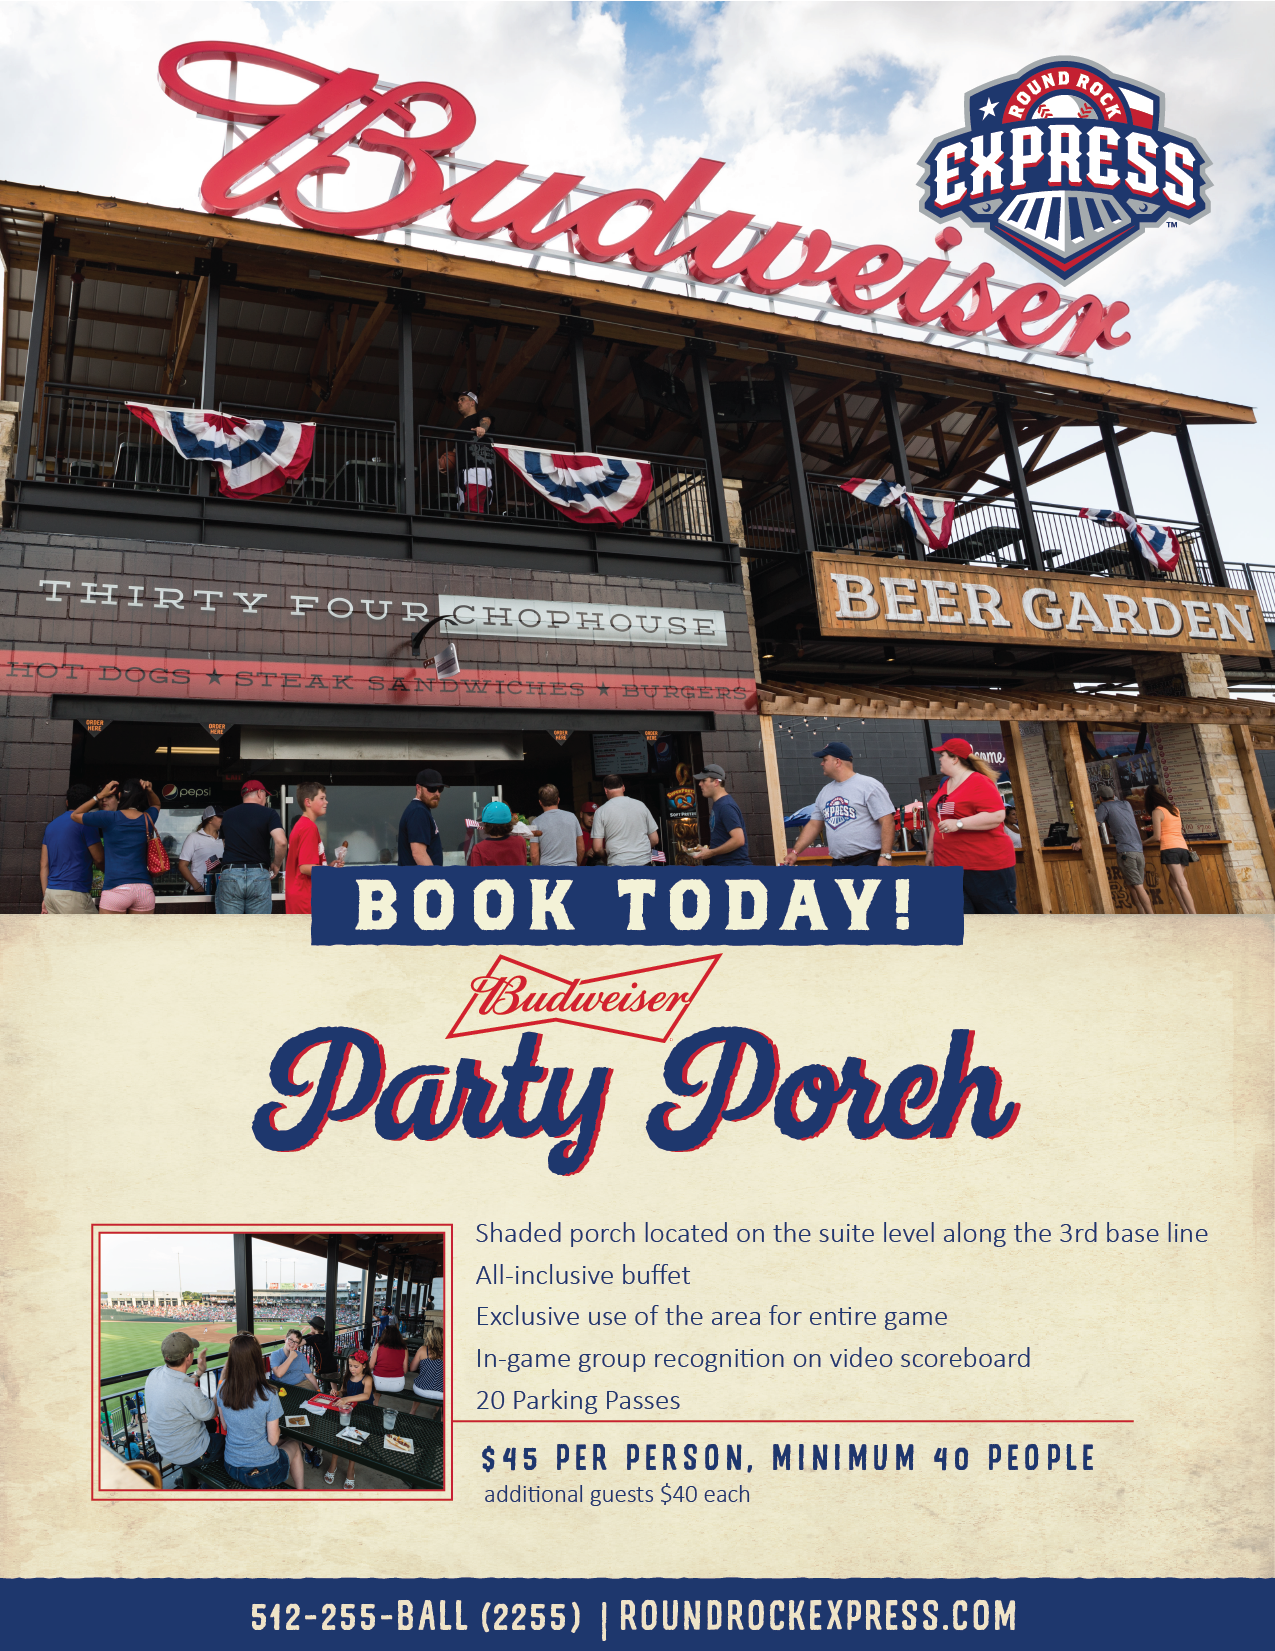 Budweiser Party Porch